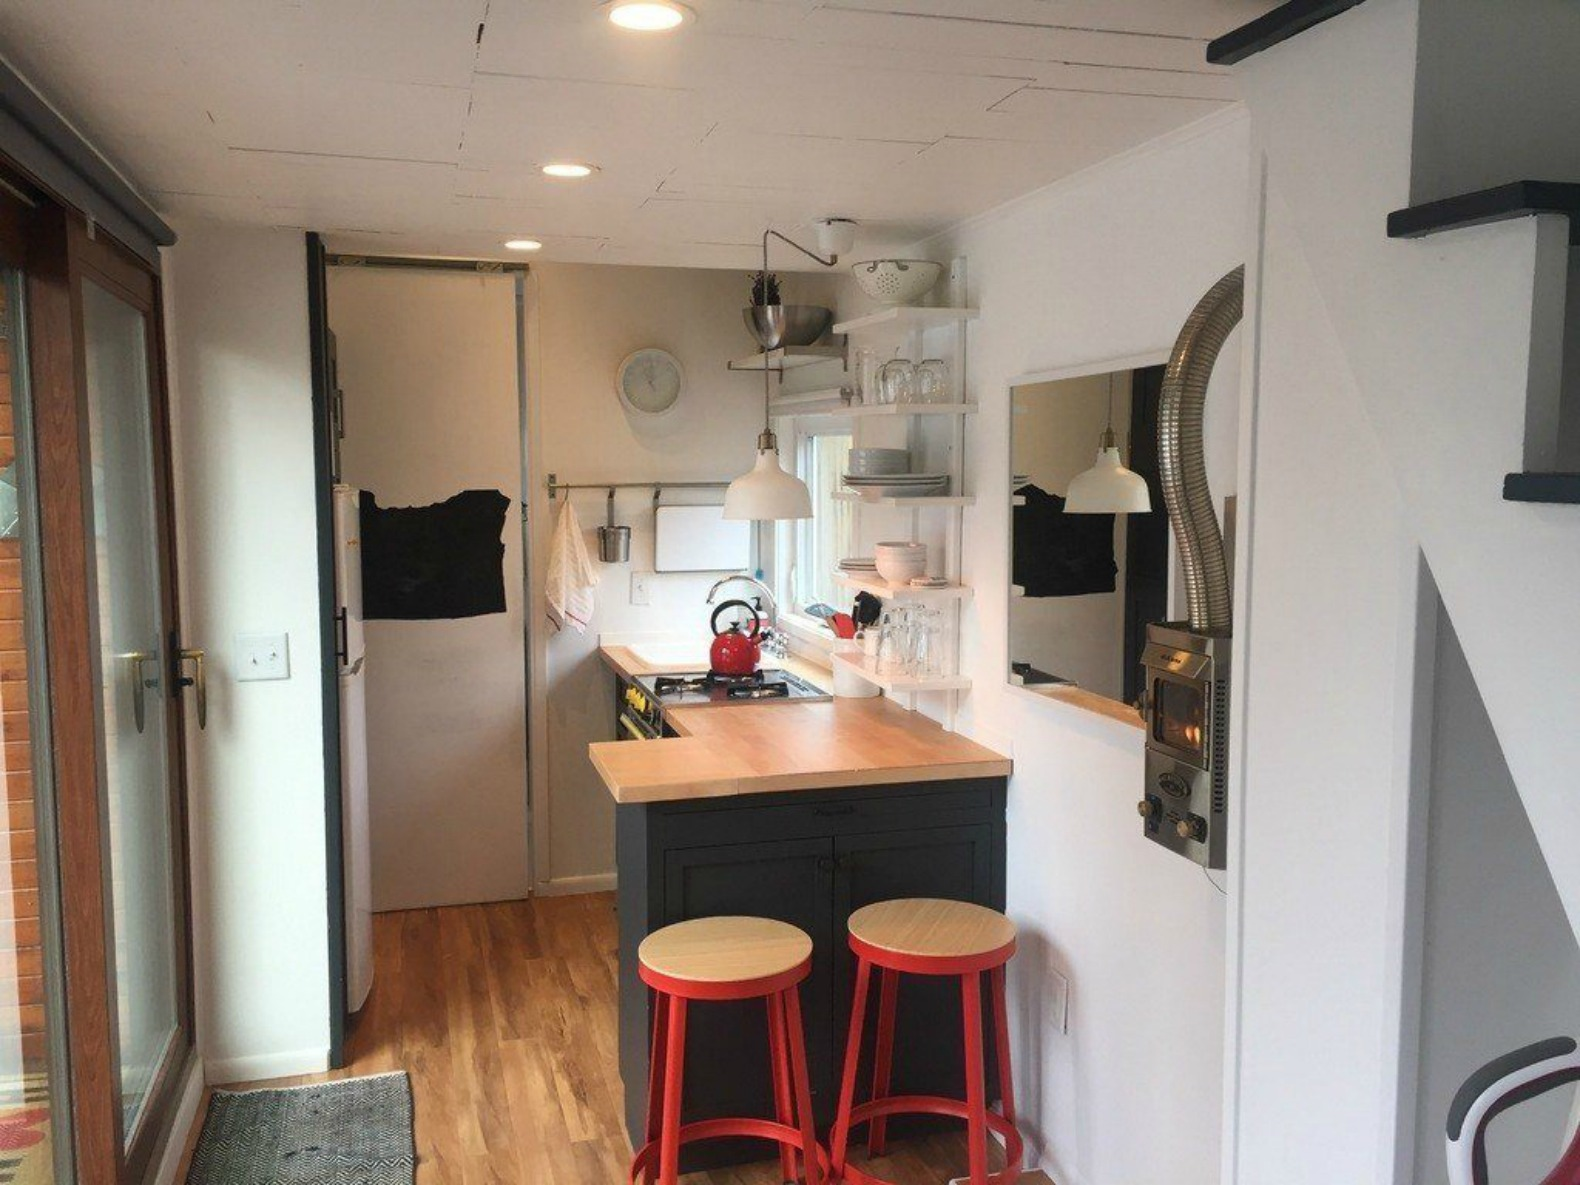 This Amazing Light Filled Tiny House Packs Big Style For Just 35k Inhabitat Green Design